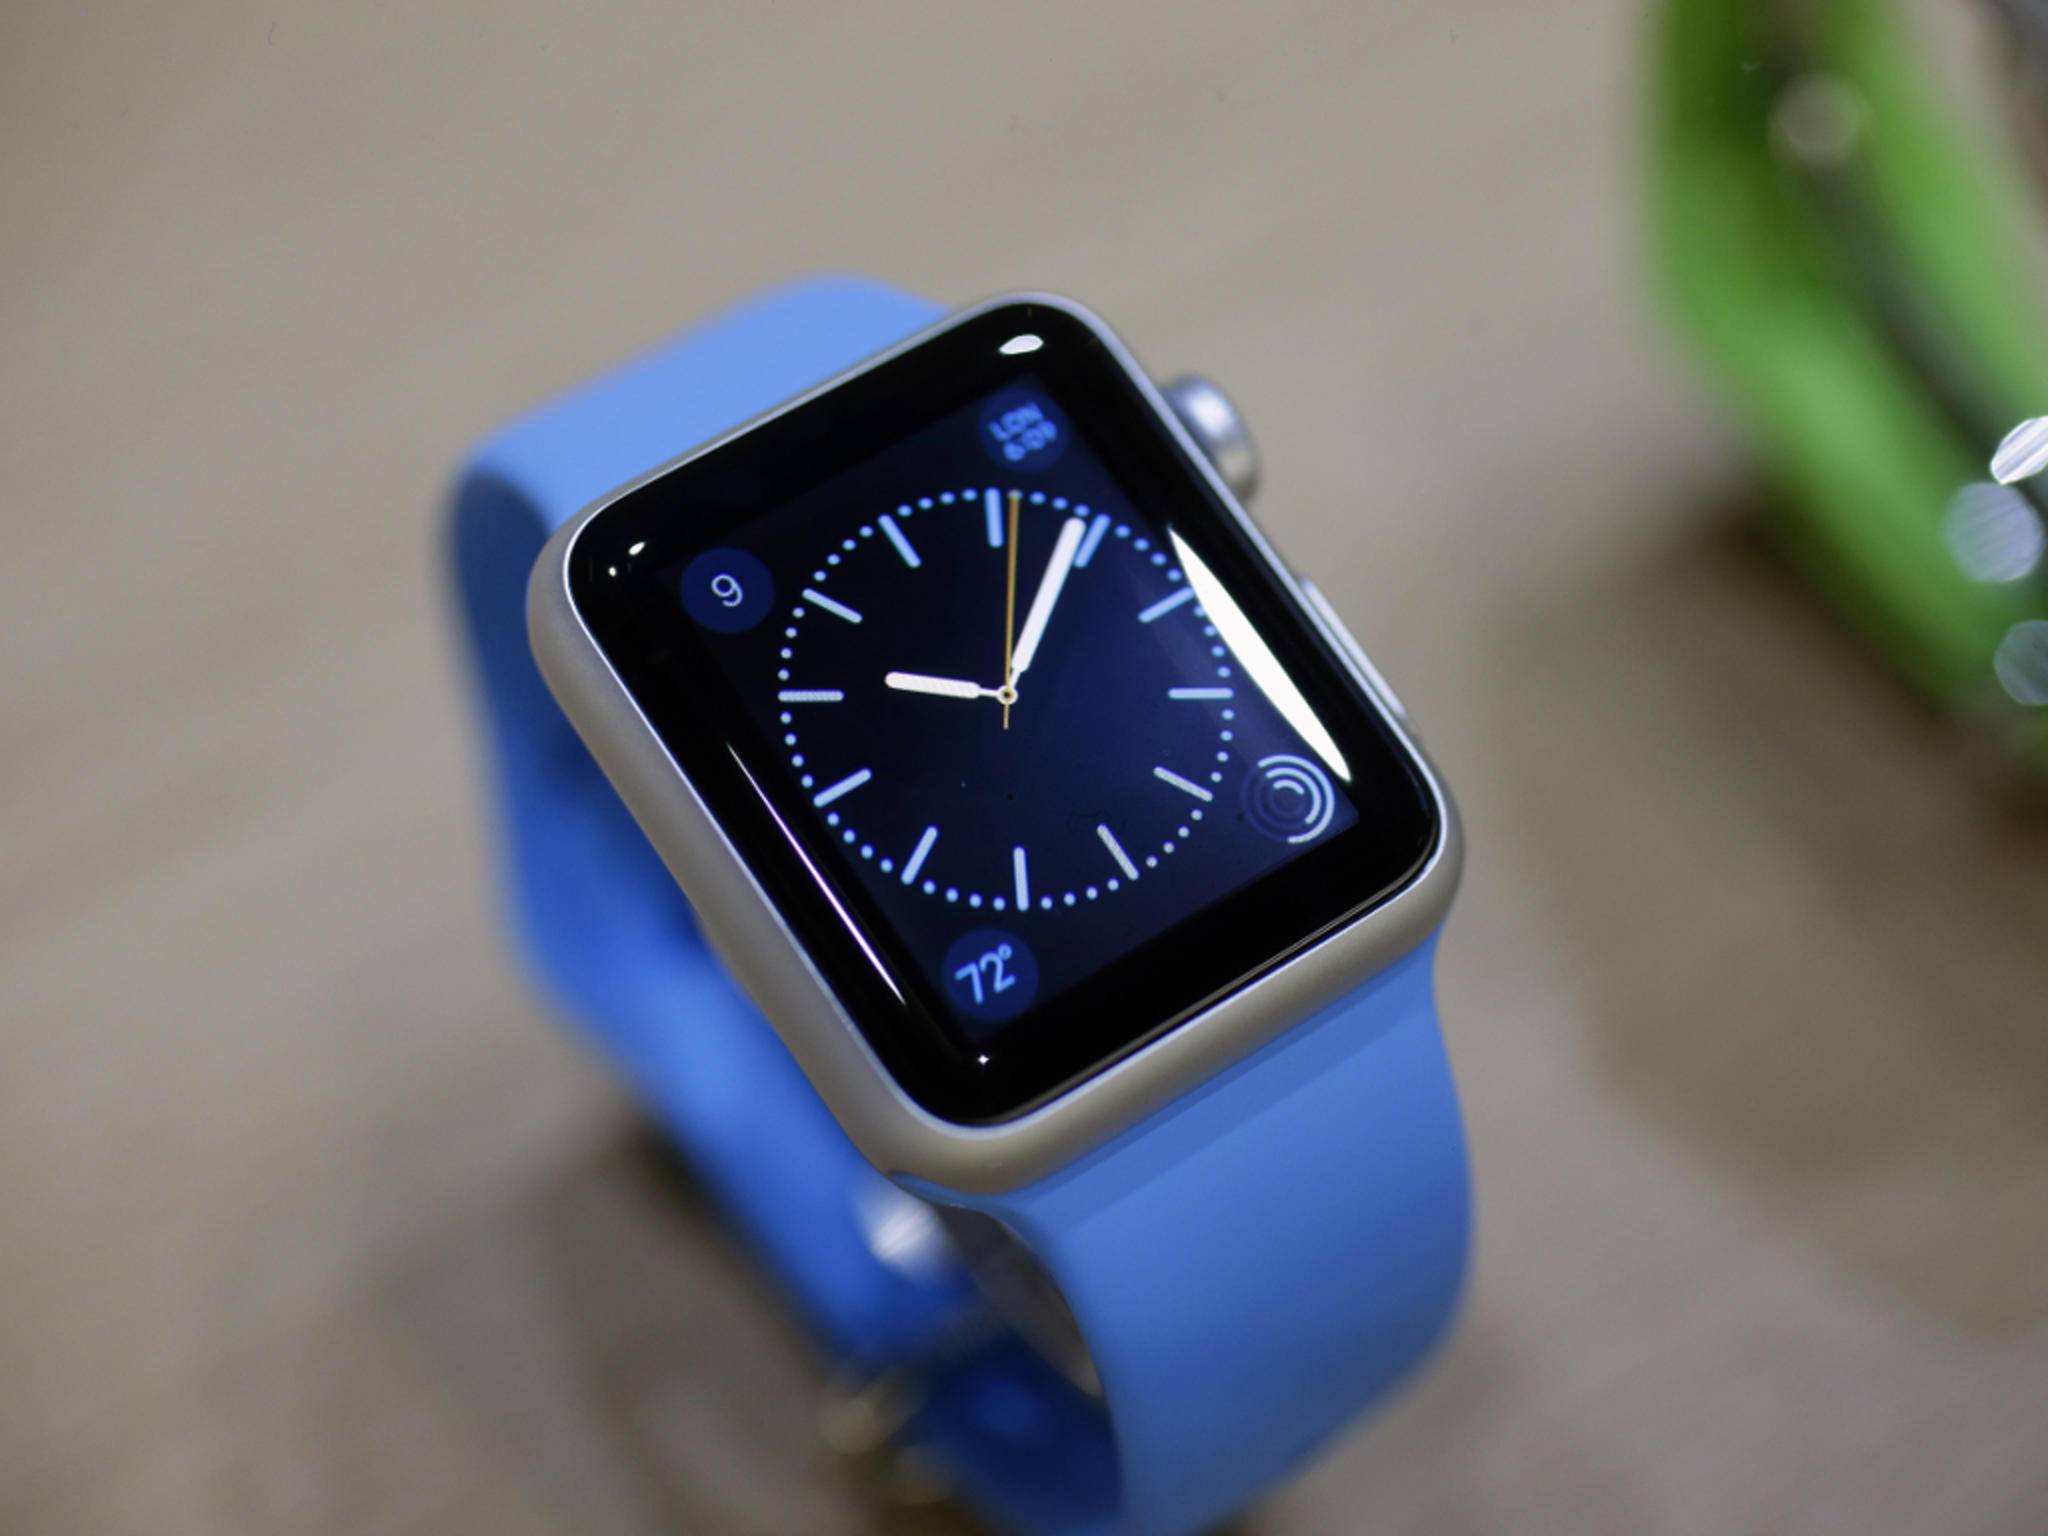 Die Apple Watch erscheint in Deutschland am 24. April.